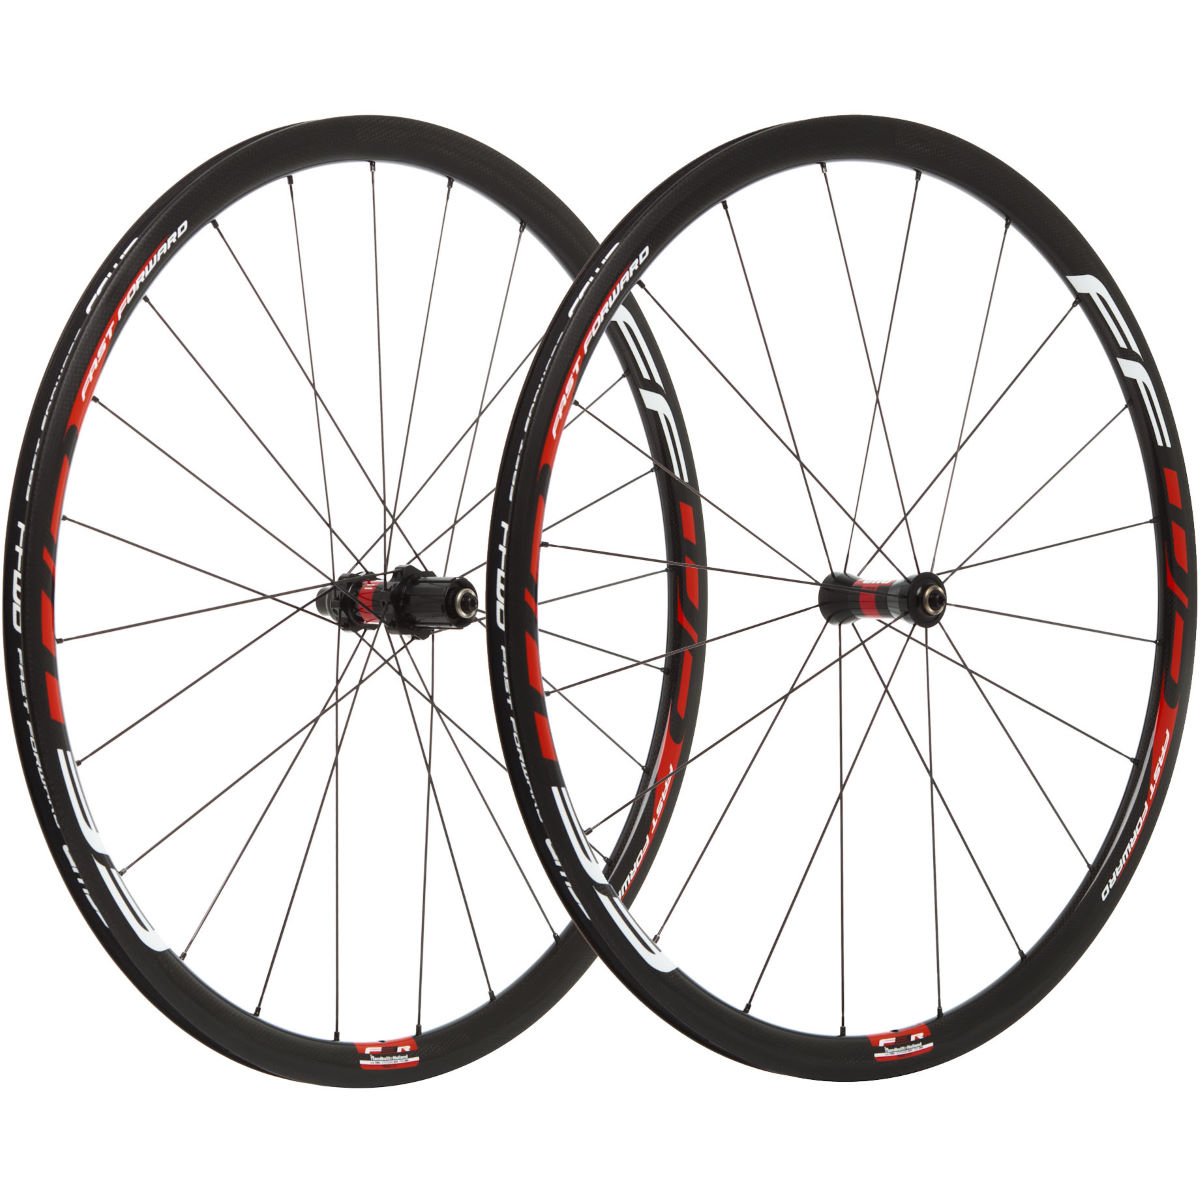 Fast Forward Carbon F3R FCC 30mm SP Wheelset - Juegos de ruedas